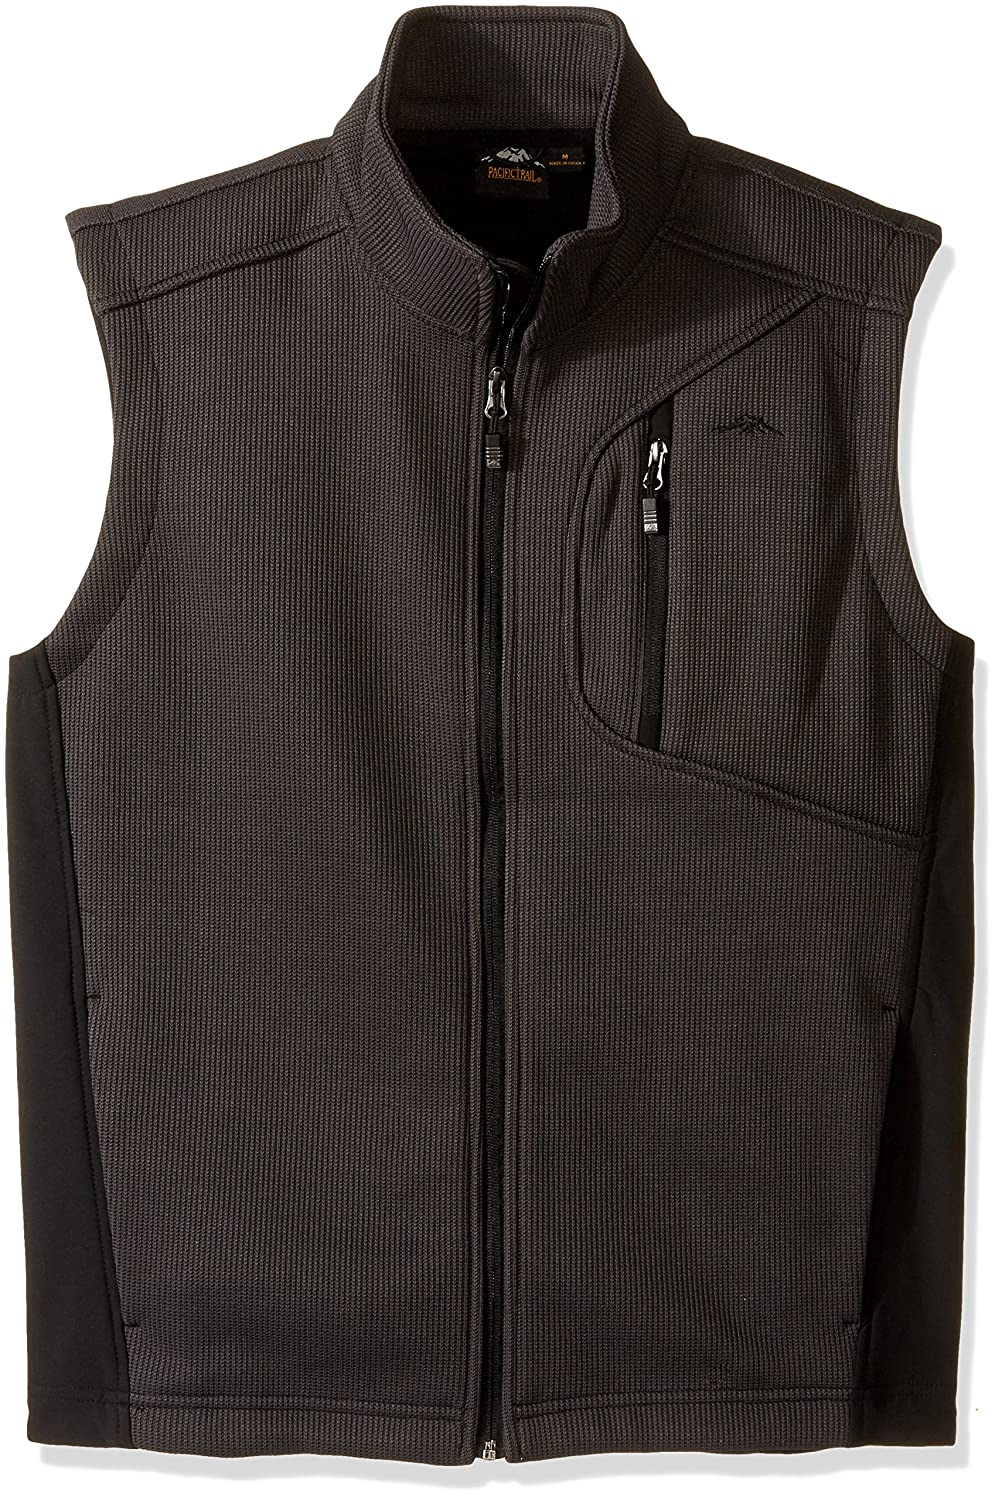 Pacific Trail Men's Sweater Knit Fleece Vest with Softshell Inserts Asphalt 2F5665A7